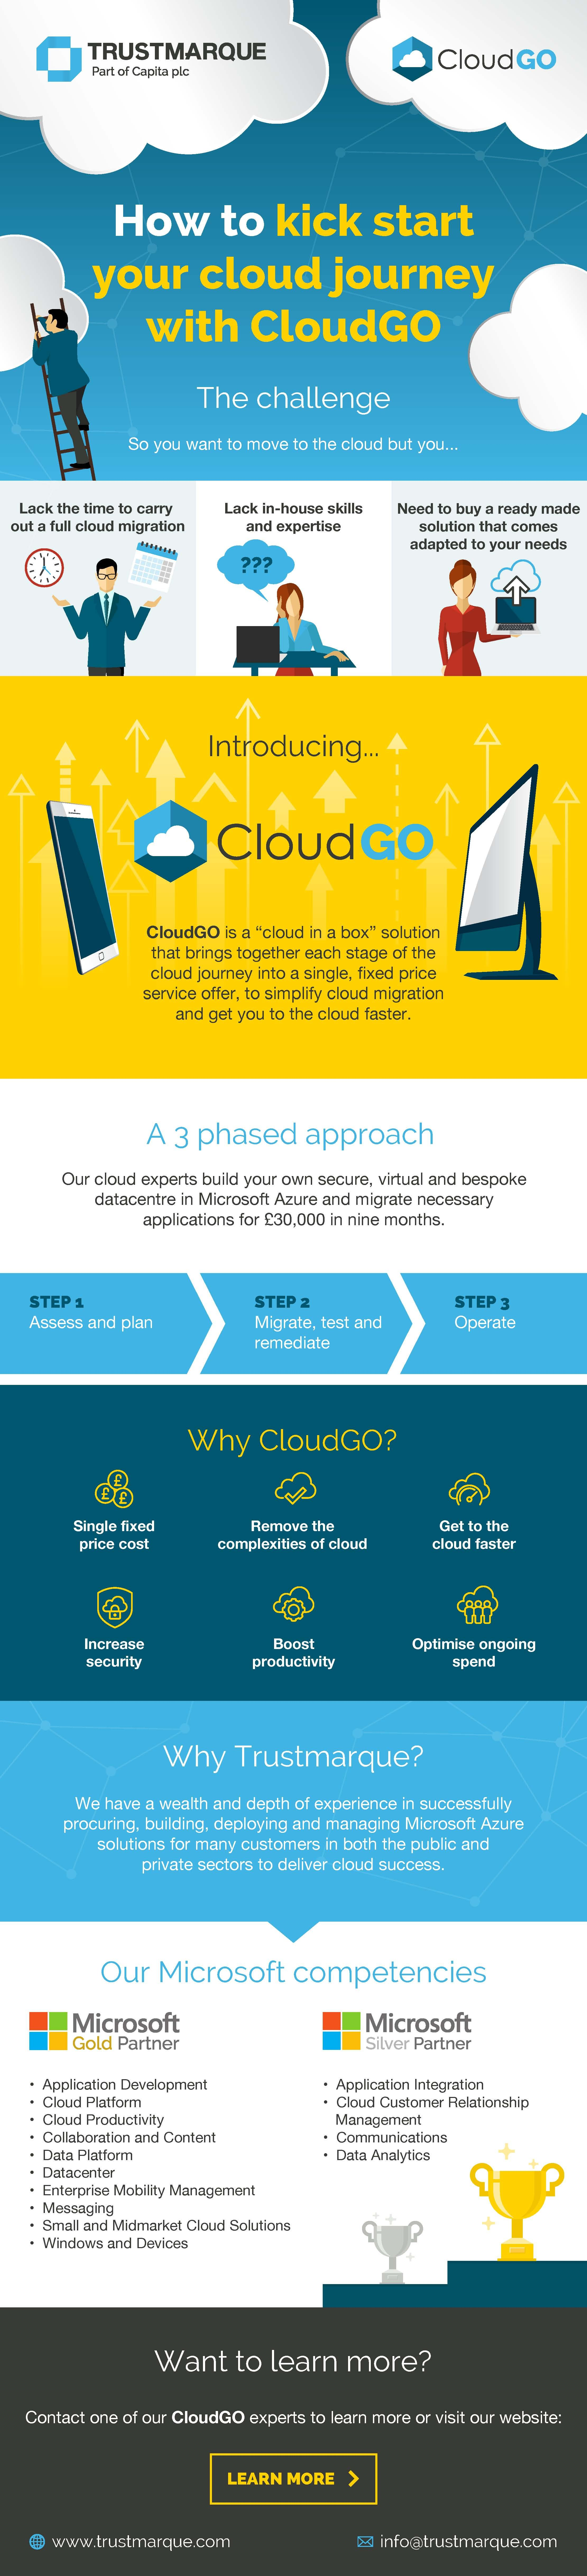 Infographic for CloudGo